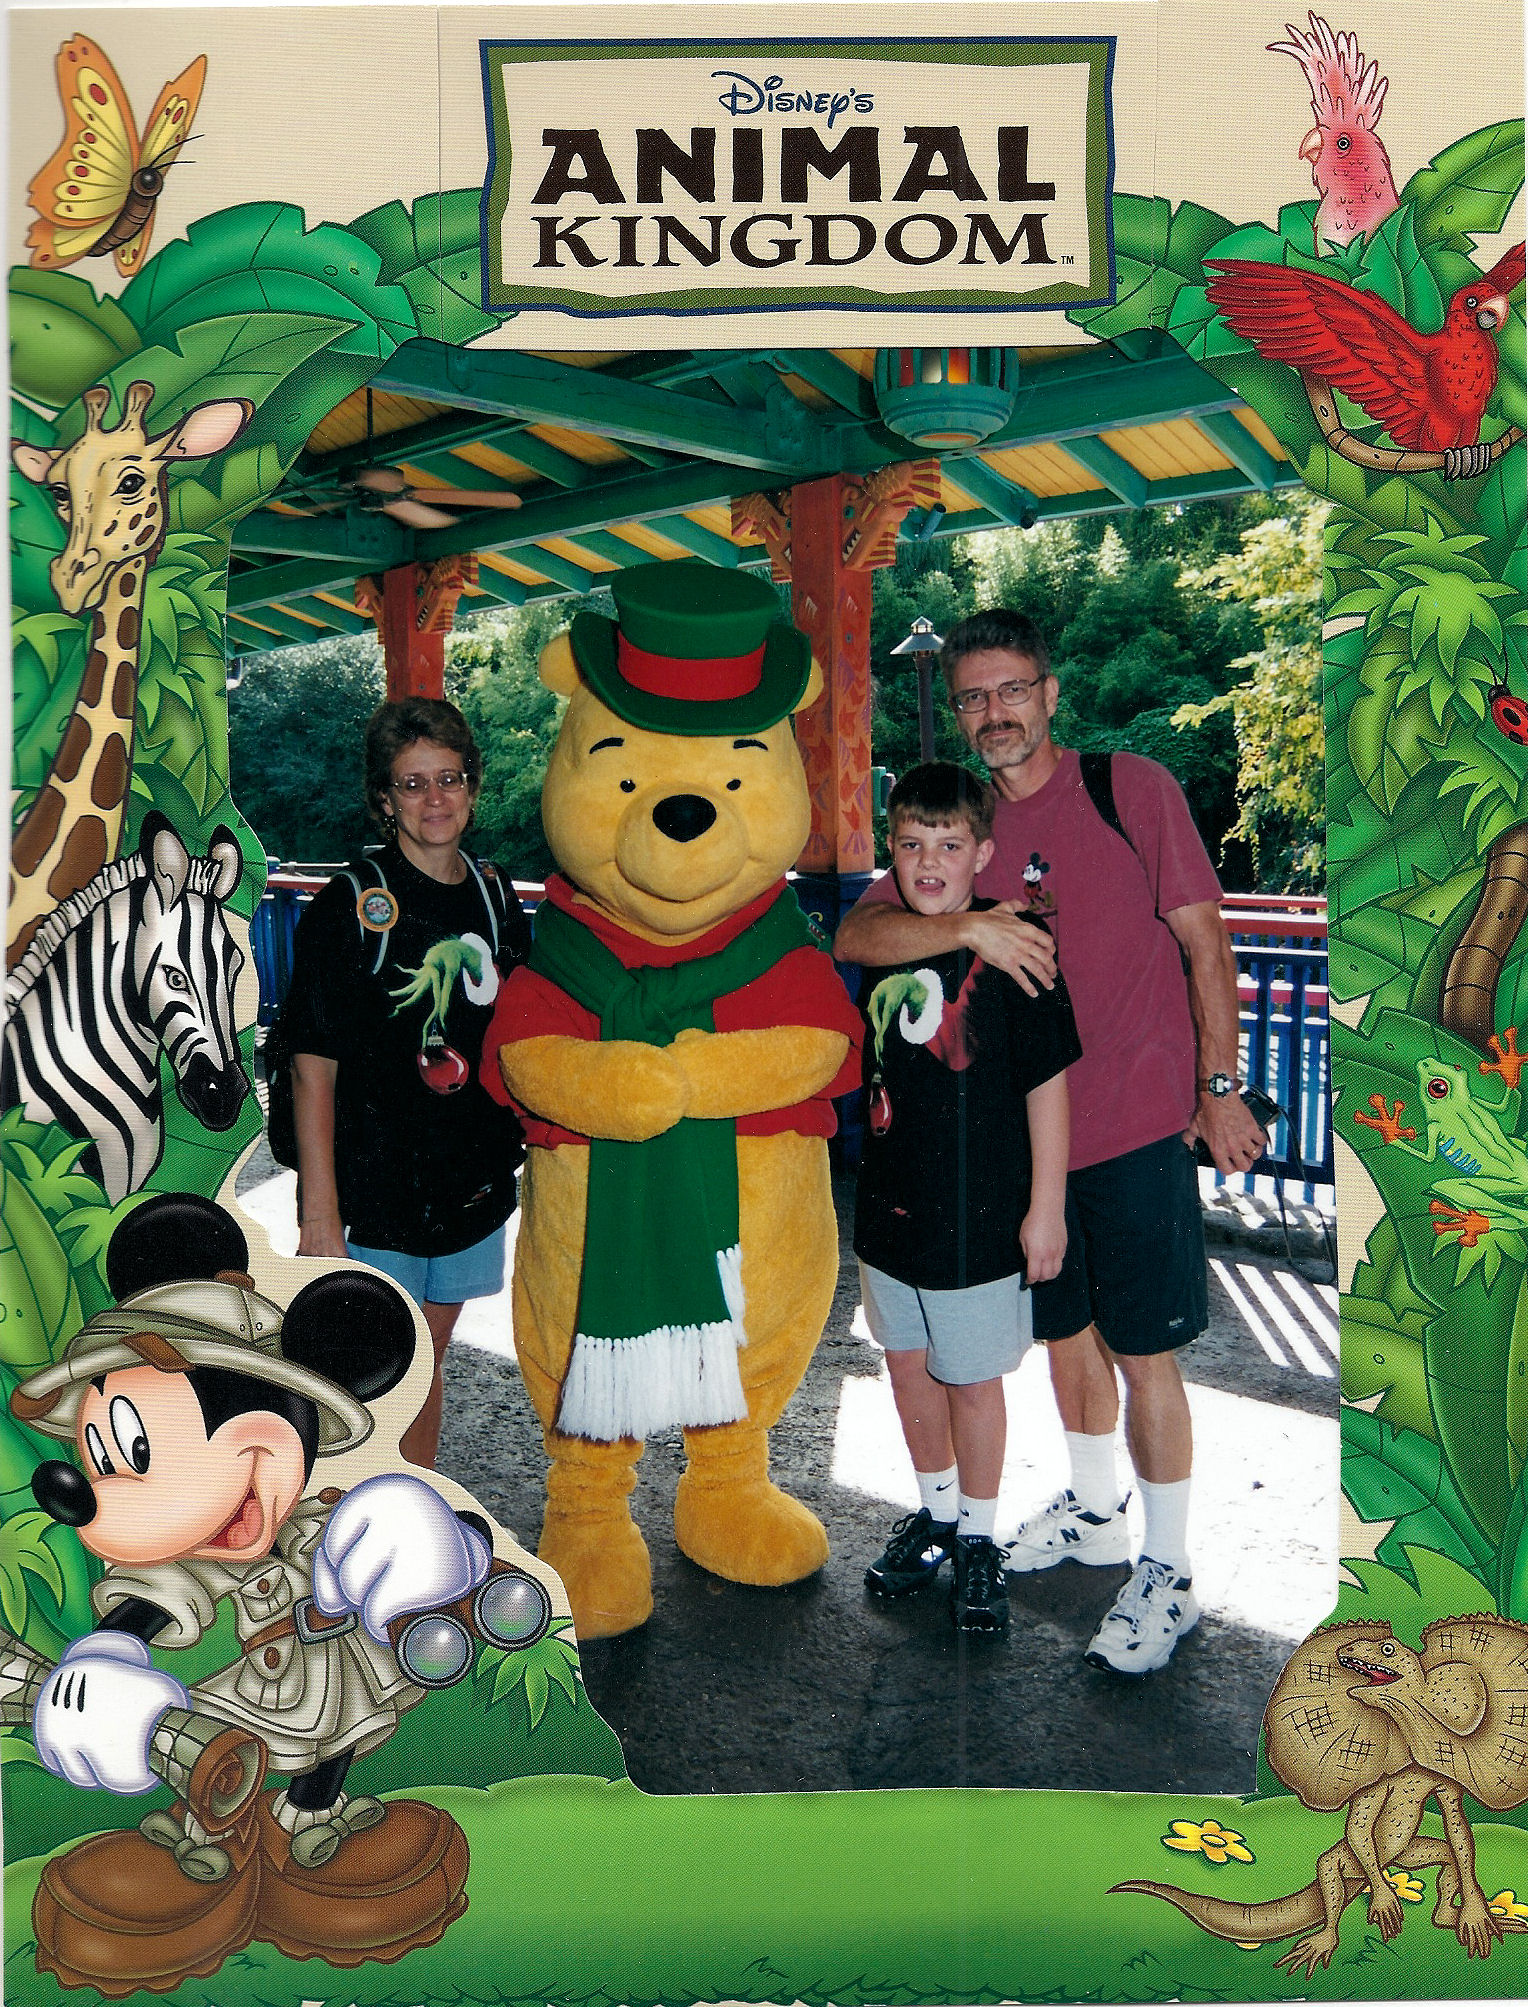 Me, my parents, and Pooh at Disney's Animal Kingdom, Disney World, around Christmas time.